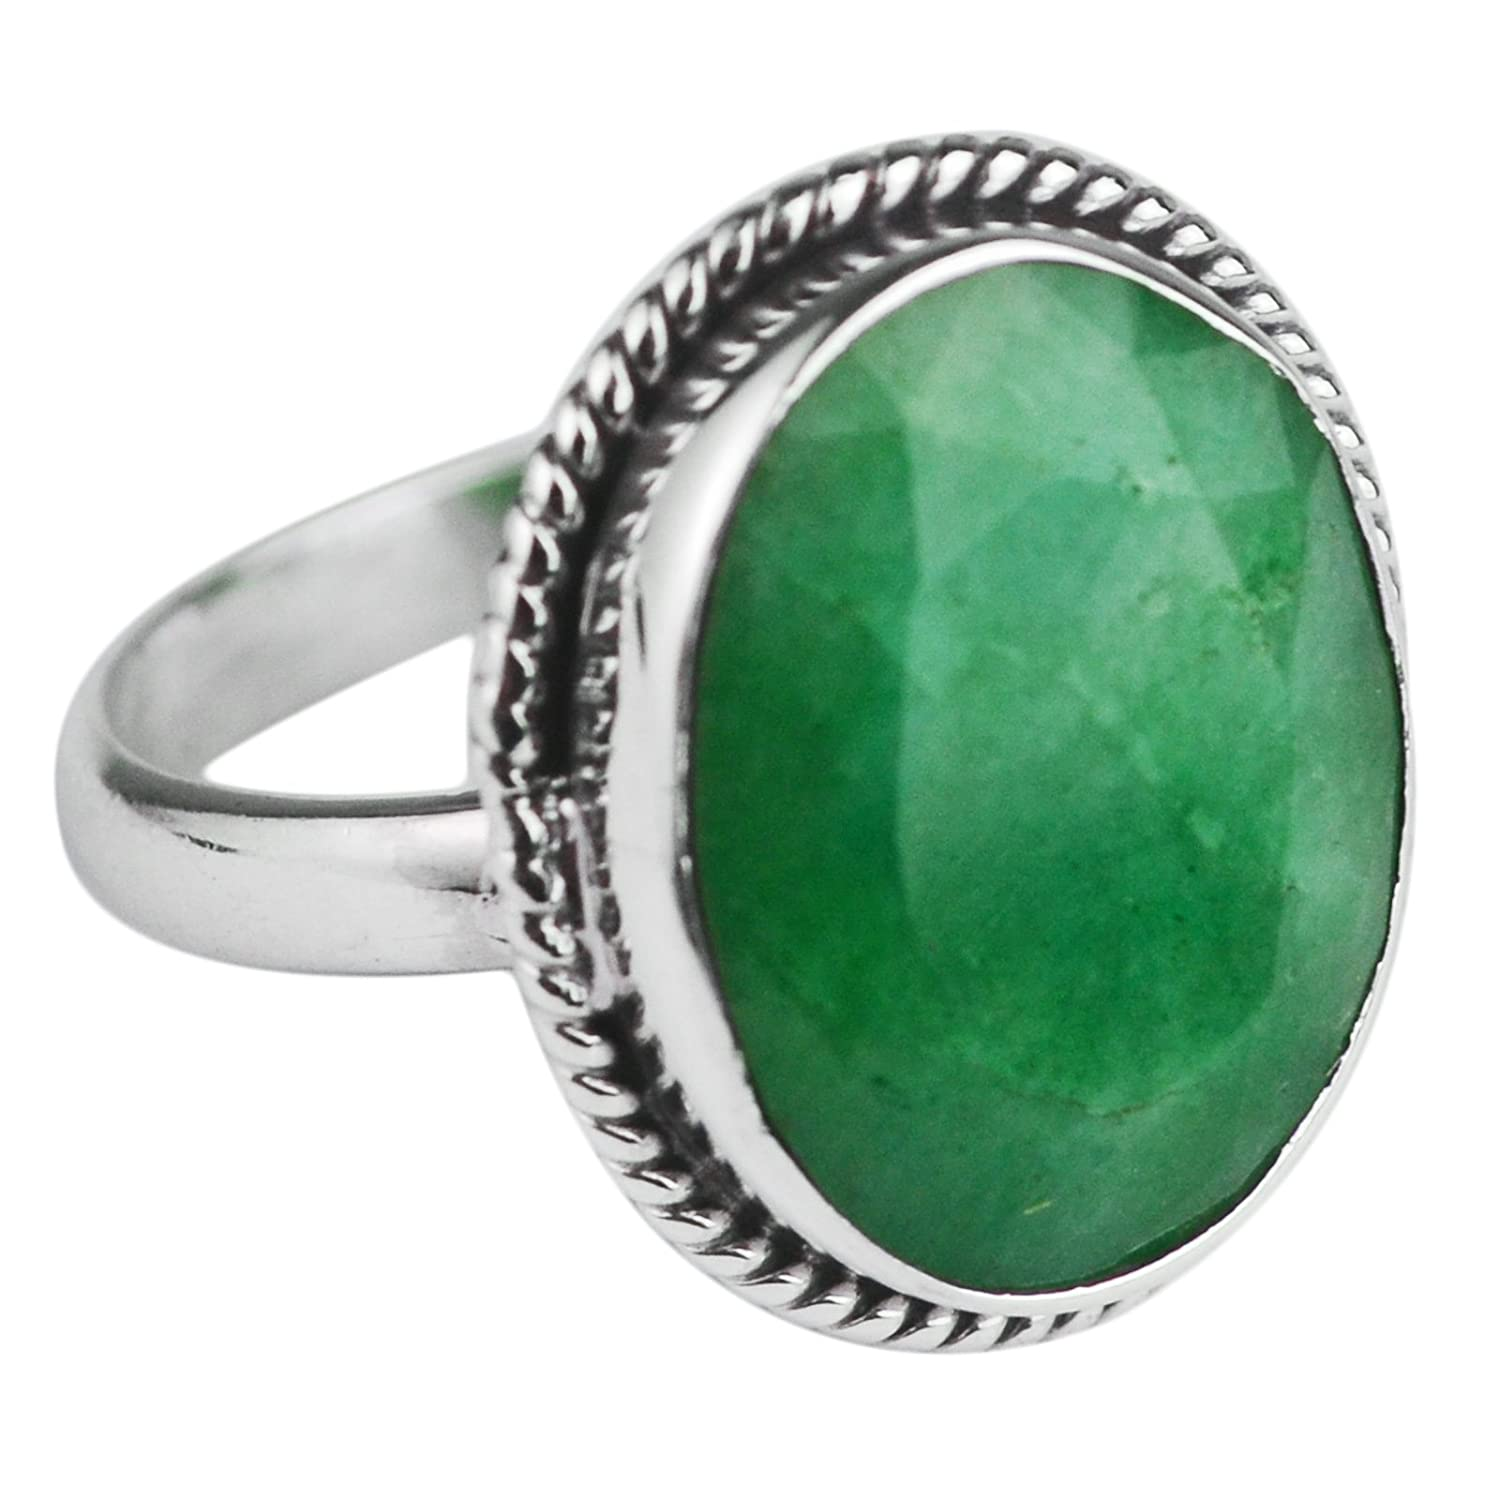 GORGEOUS 5ct Oval Cut Emerald Ring  Sterling Silver Ring Sizing 4 5 6 7 8 9 Trending Jewelry Gifts May Mom Wife Sister Deep Woven Crown Lab